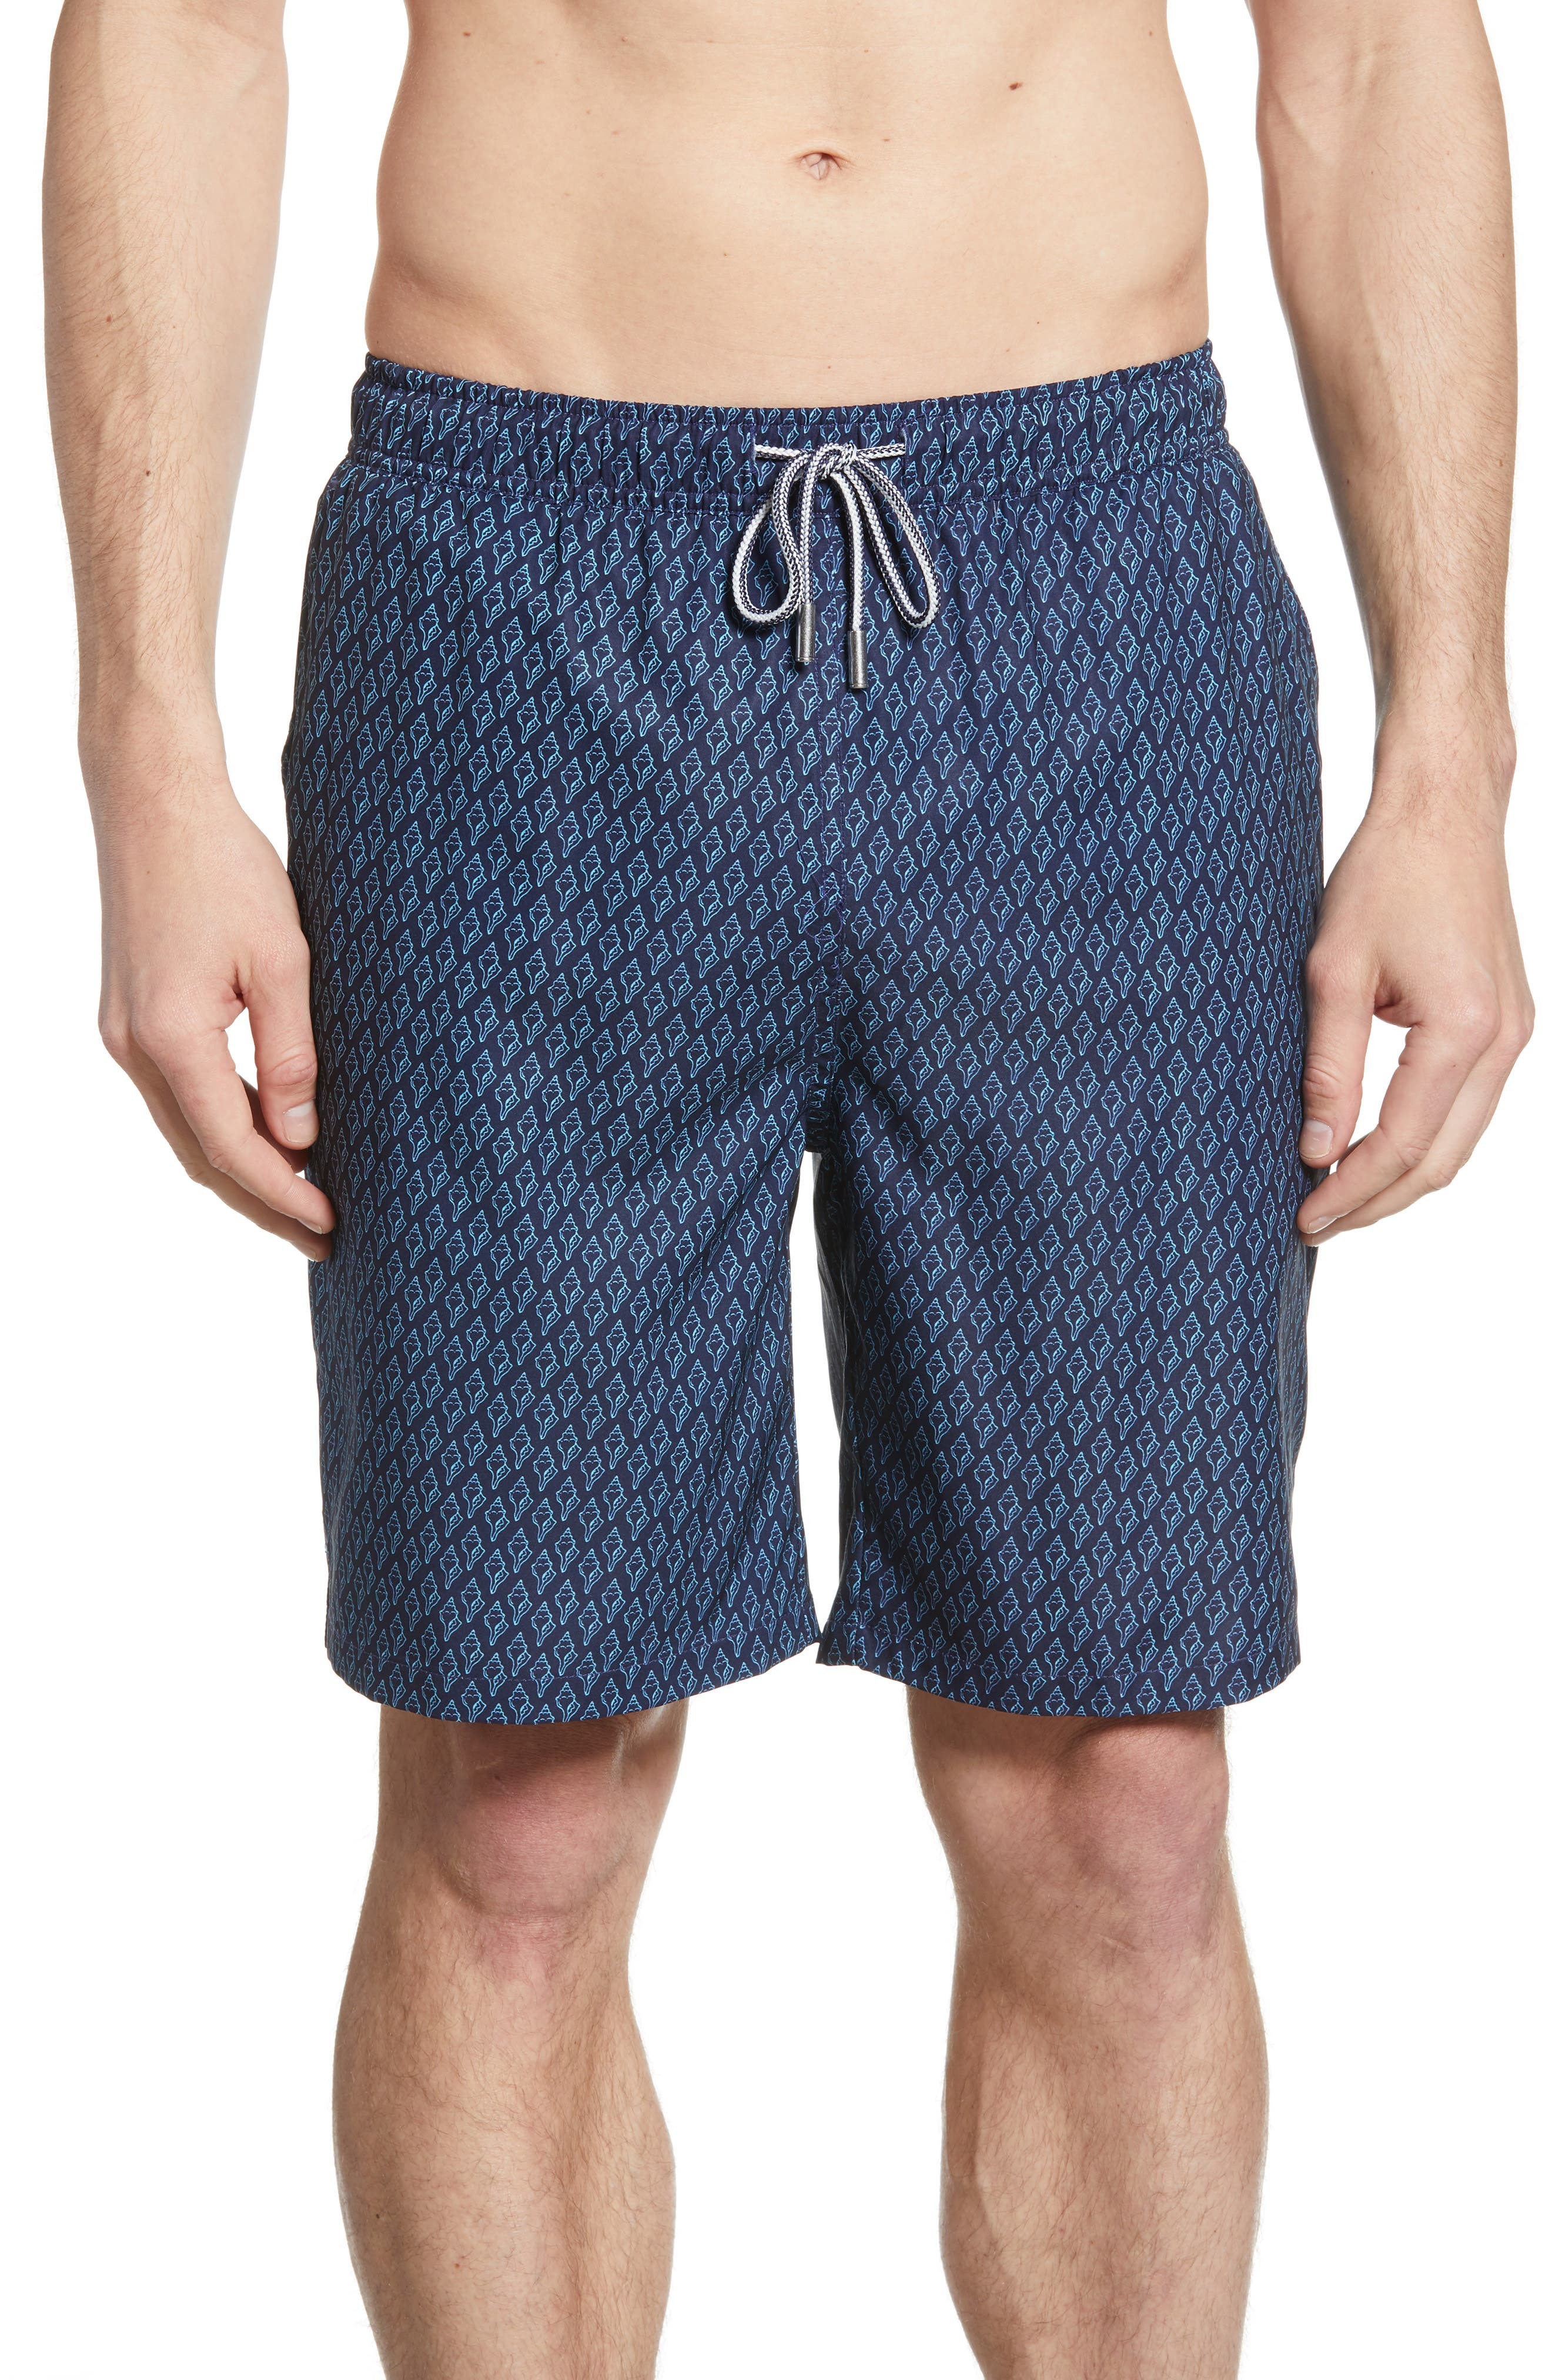 Peter Millar Neon Conch Swim Trunks, Blue